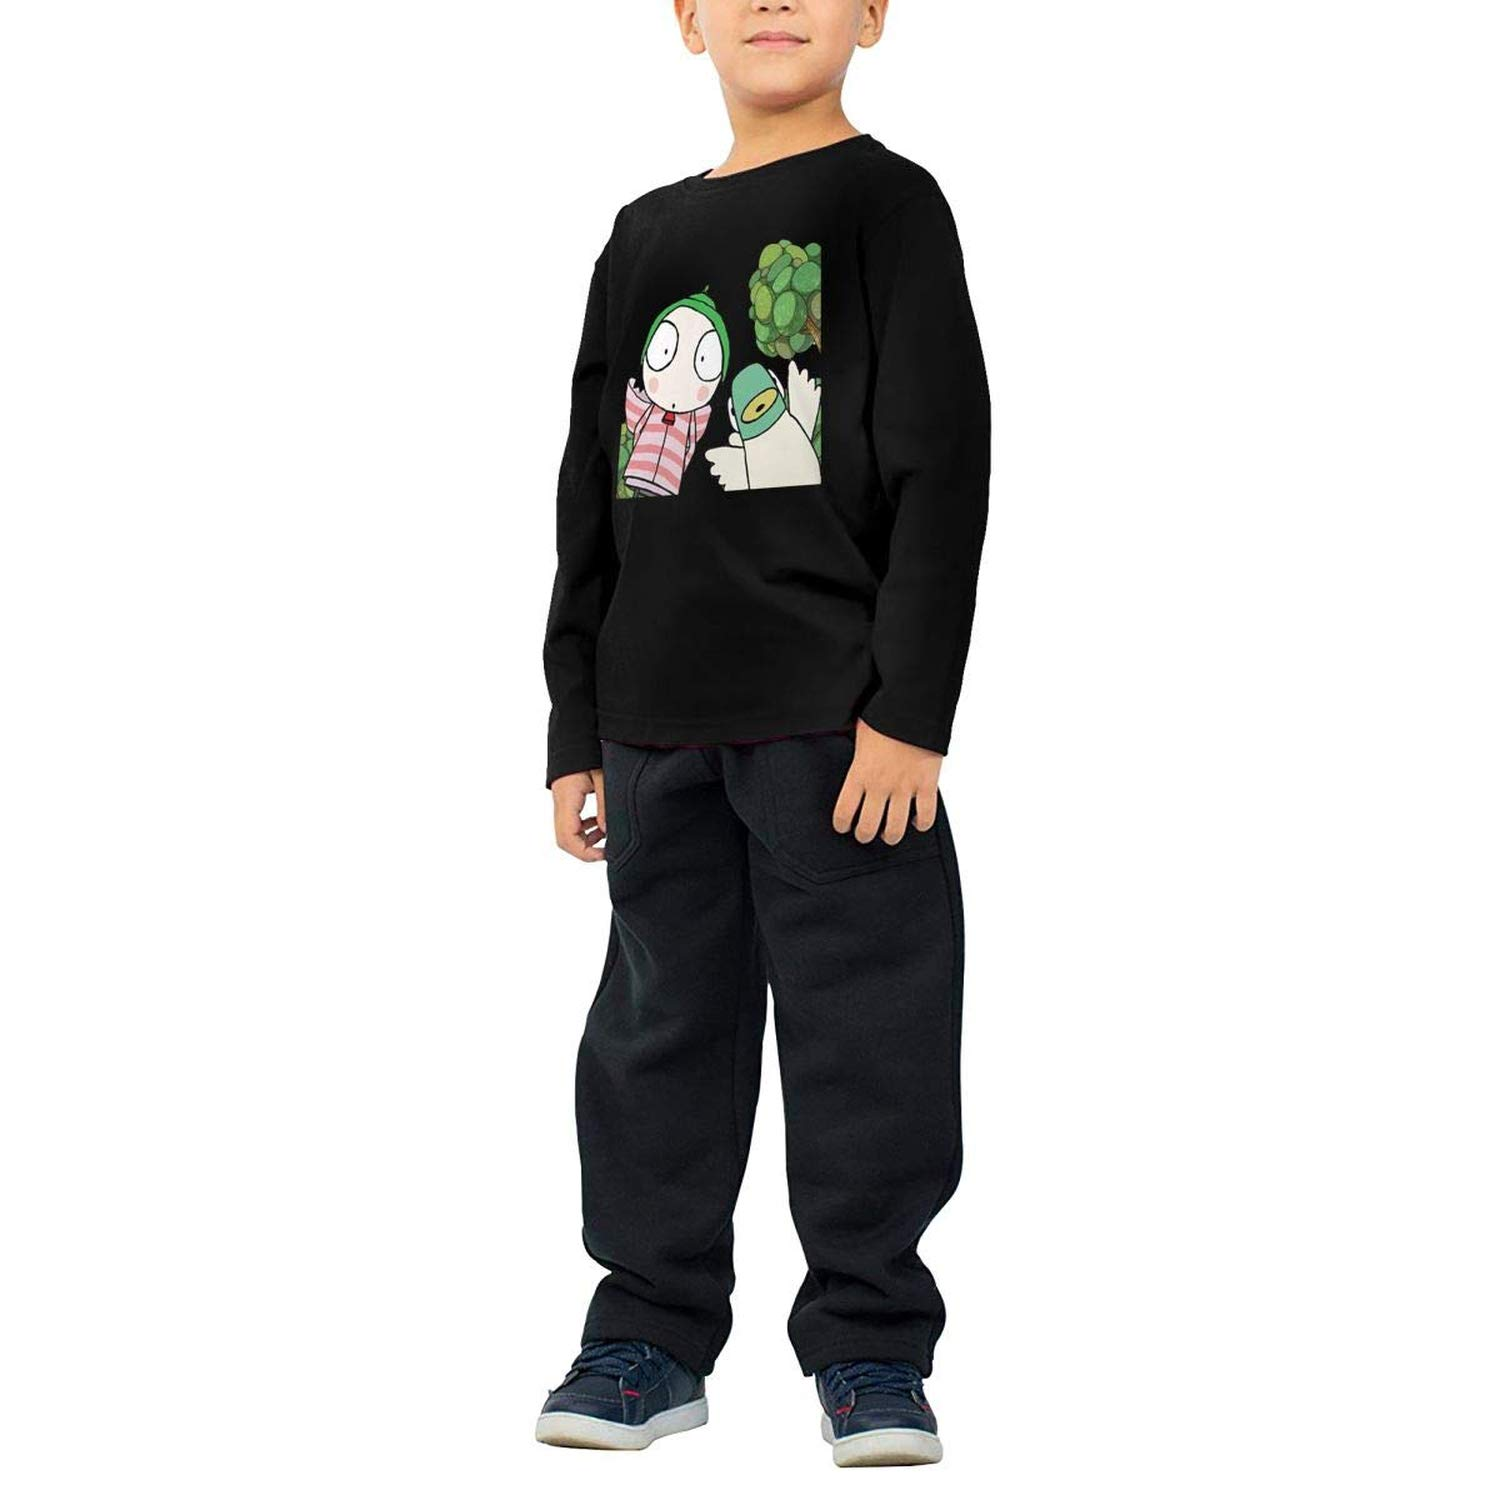 To-night Childrens Long Sleeve T-Shirt Personality Street Trend Creation Sarah /& Duck Logo Black